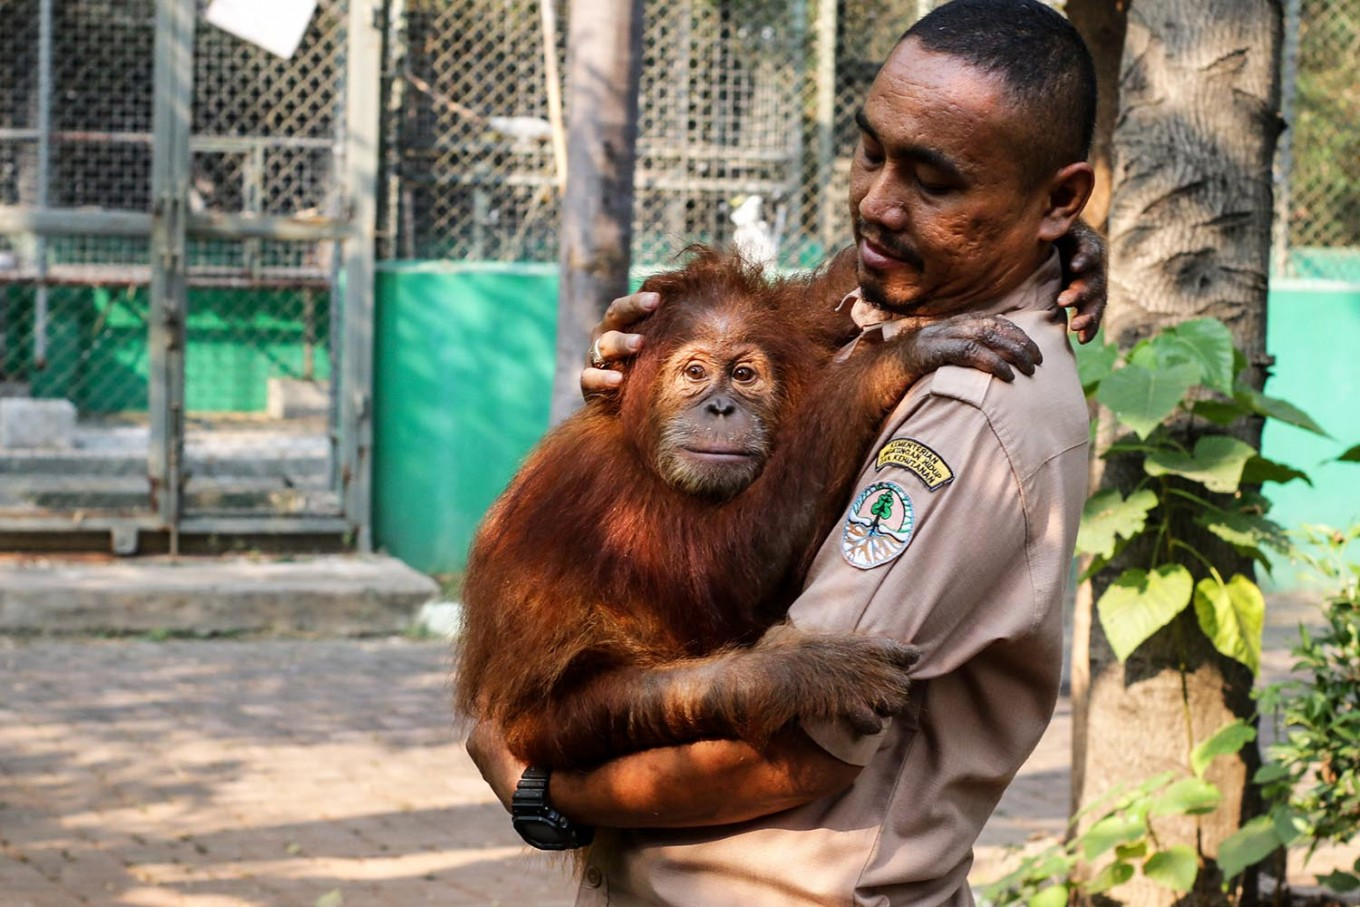 An orangutan named Otan at the Tegal Alur Animal Conservation, Jakarta, in July 2018, about to be translocated to the Foundation for Sustainable Ecosystem - Sumatran Orangutan Conservation Program. (Antara/Rivan Awal Lingga)